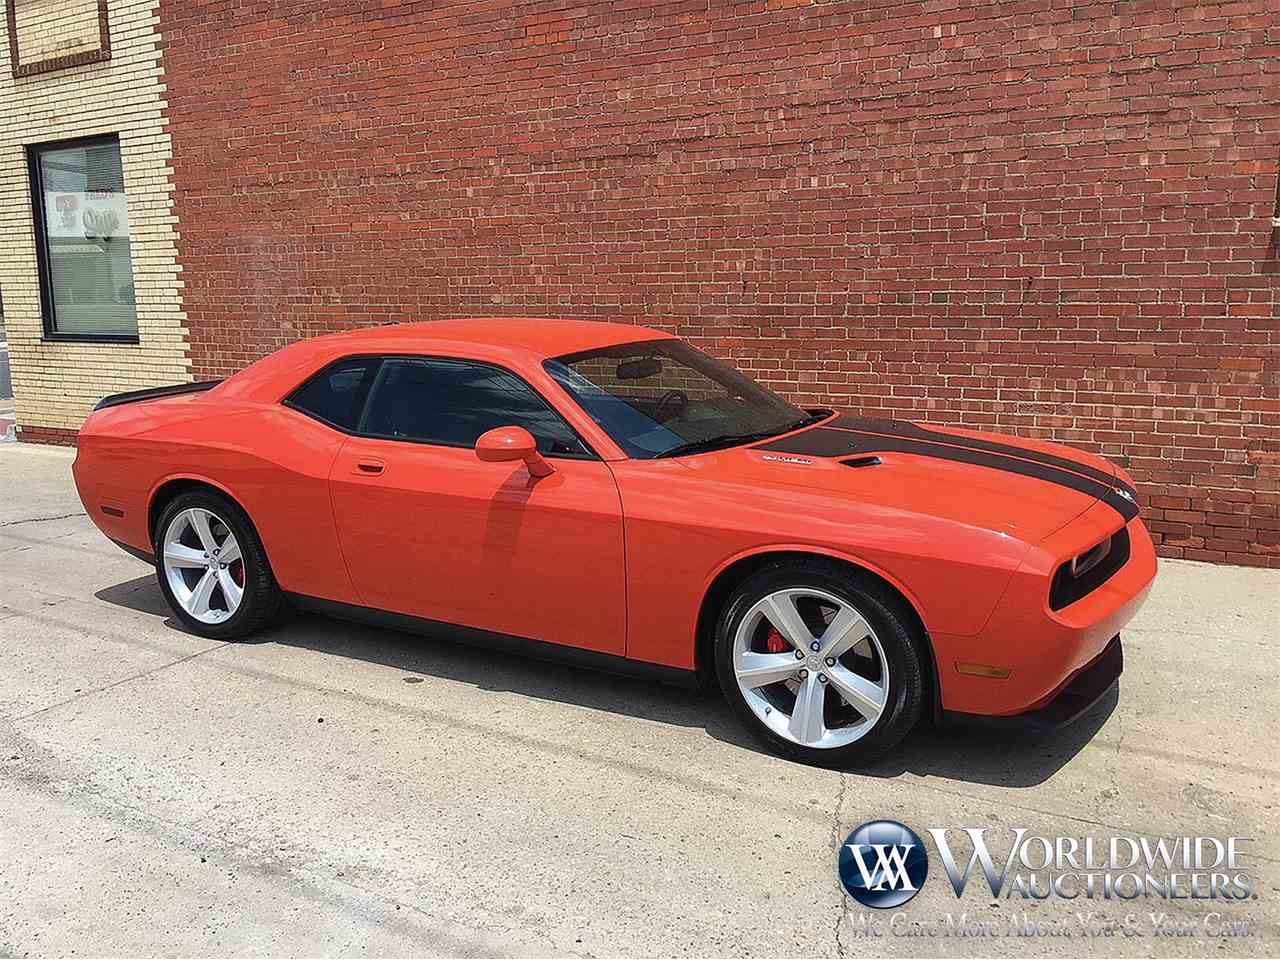 2008 dodge challenger srt8 limited edition for sale cc 1078293. Black Bedroom Furniture Sets. Home Design Ideas